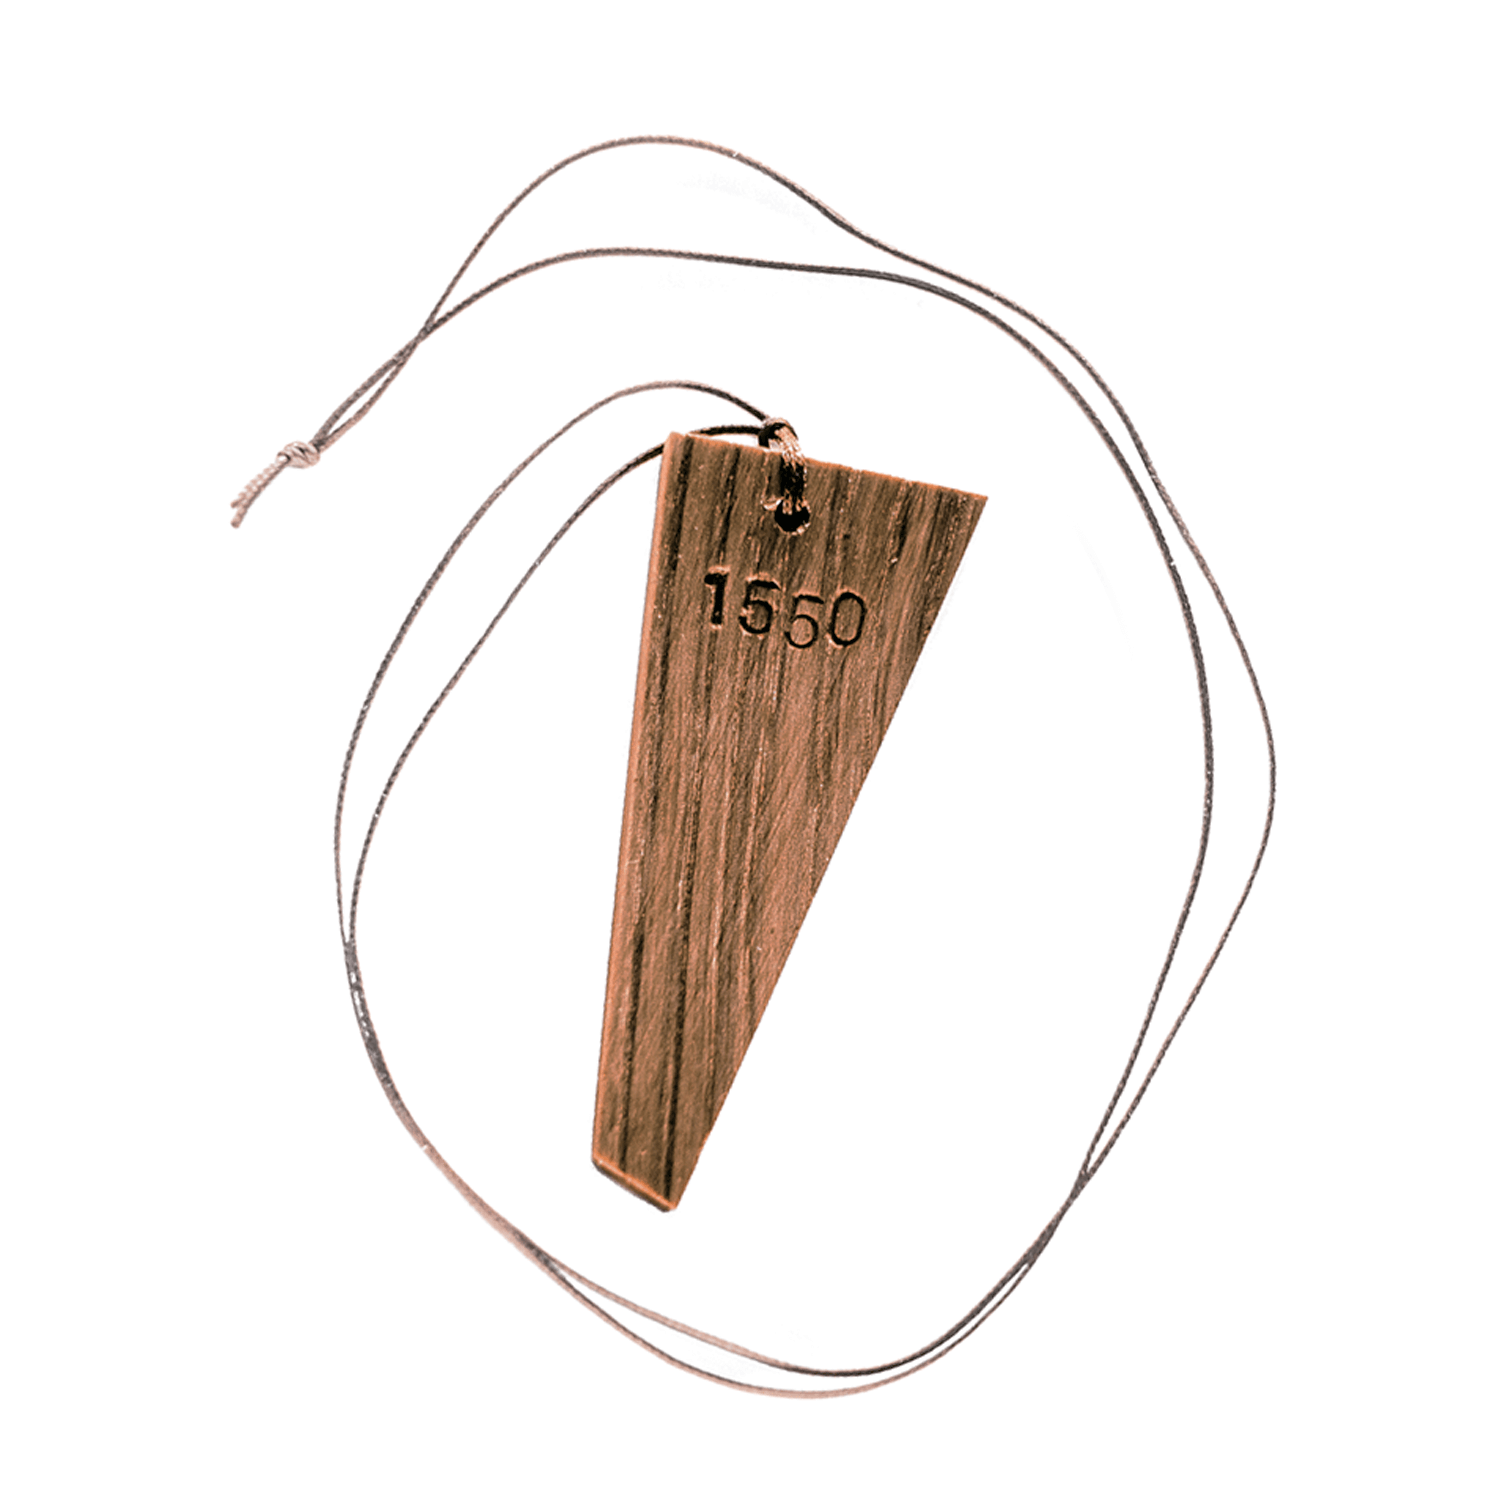 Protect 10 Square Feet of Forest + Get a Wooden Necklace